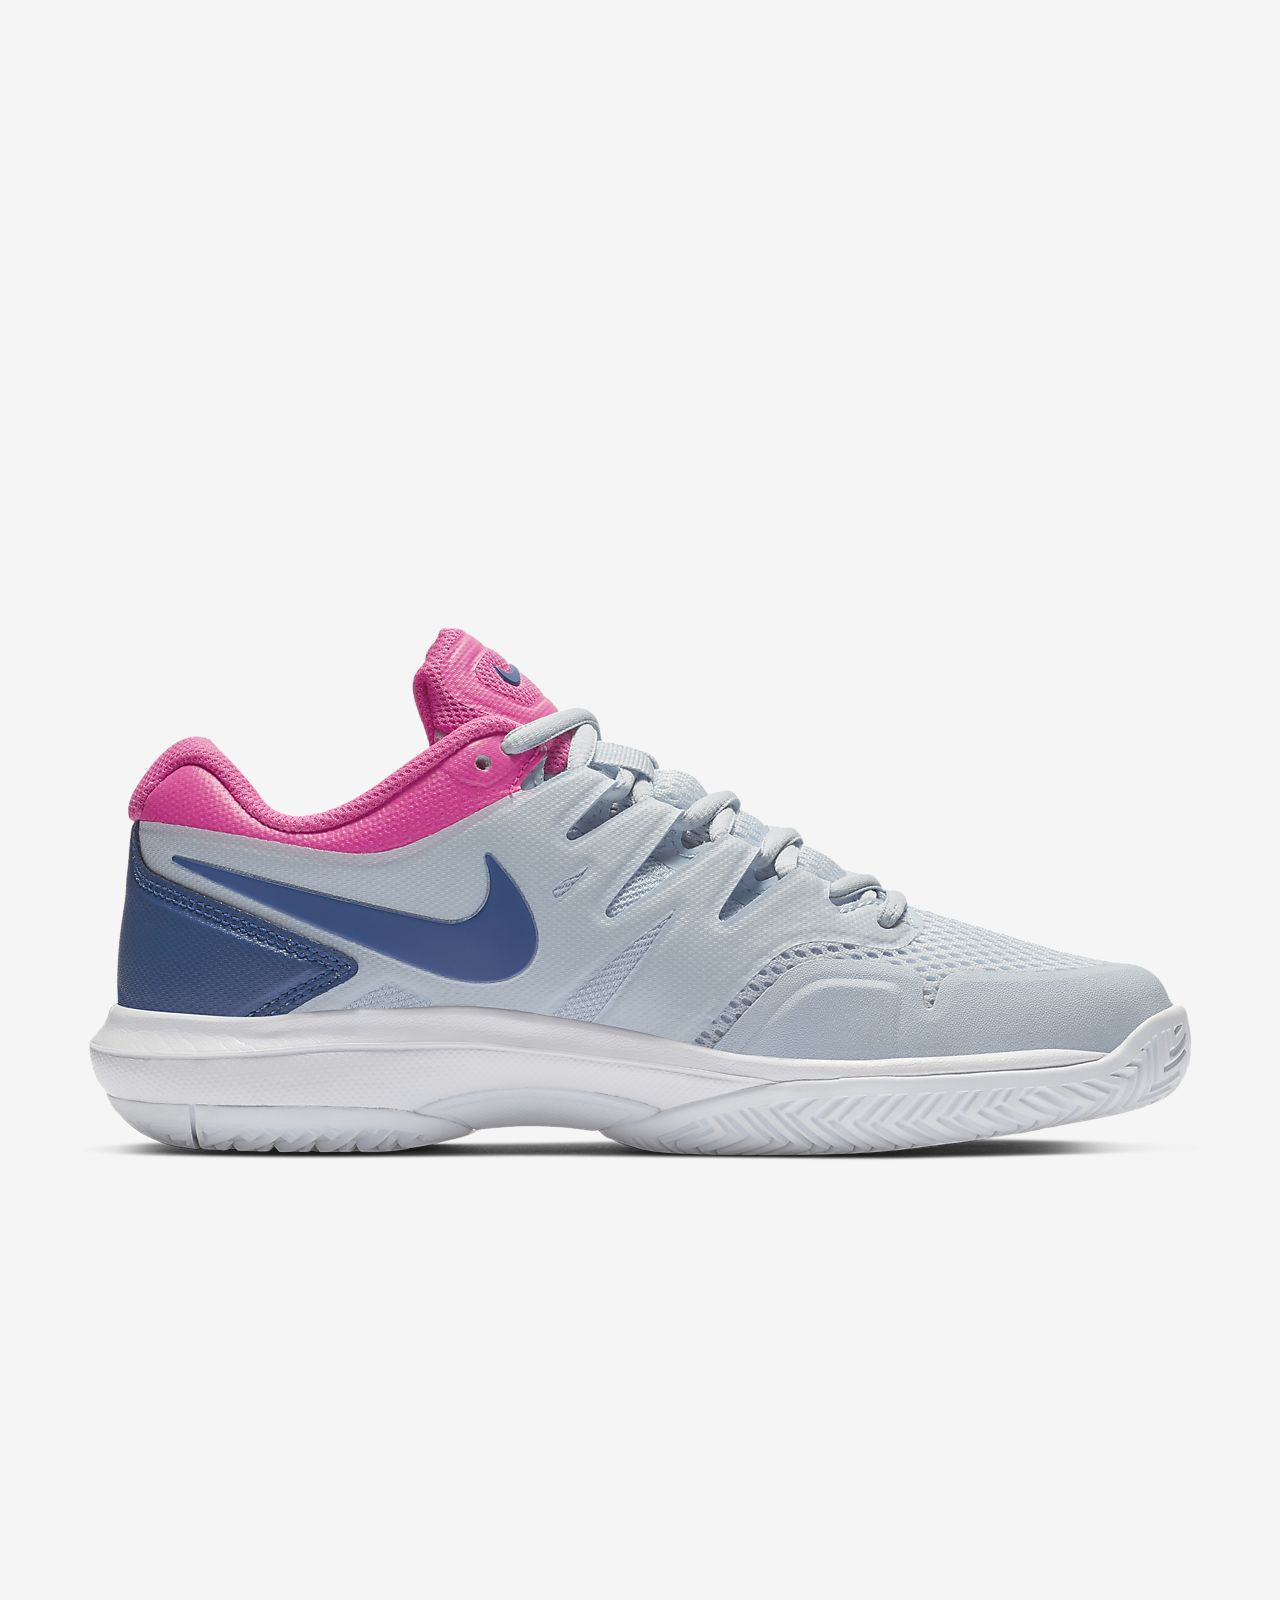 5028b6a31c6 NikeCourt Air Zoom Prestige Women s Hard Court Tennis Shoe. Nike.com AU